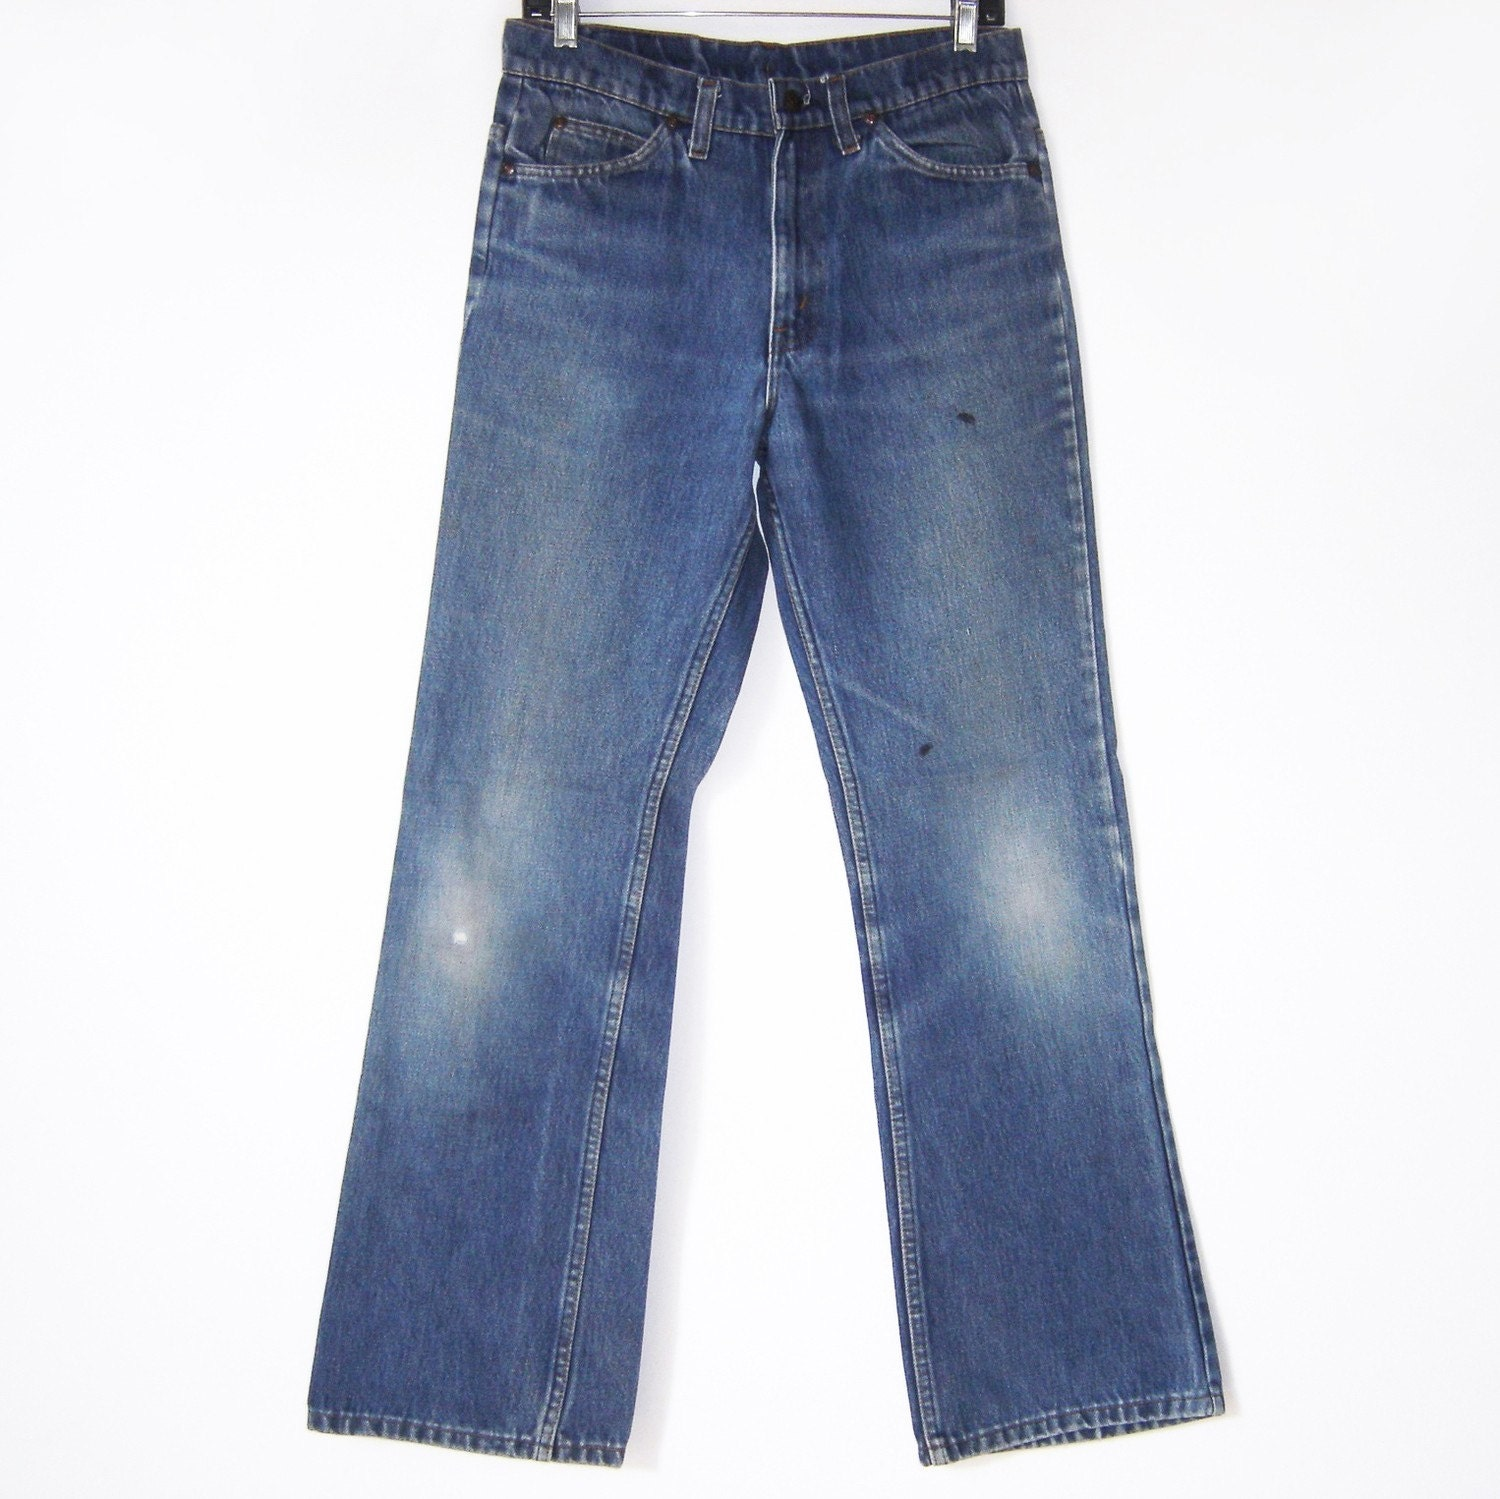 Bootcut Jeans For Mens